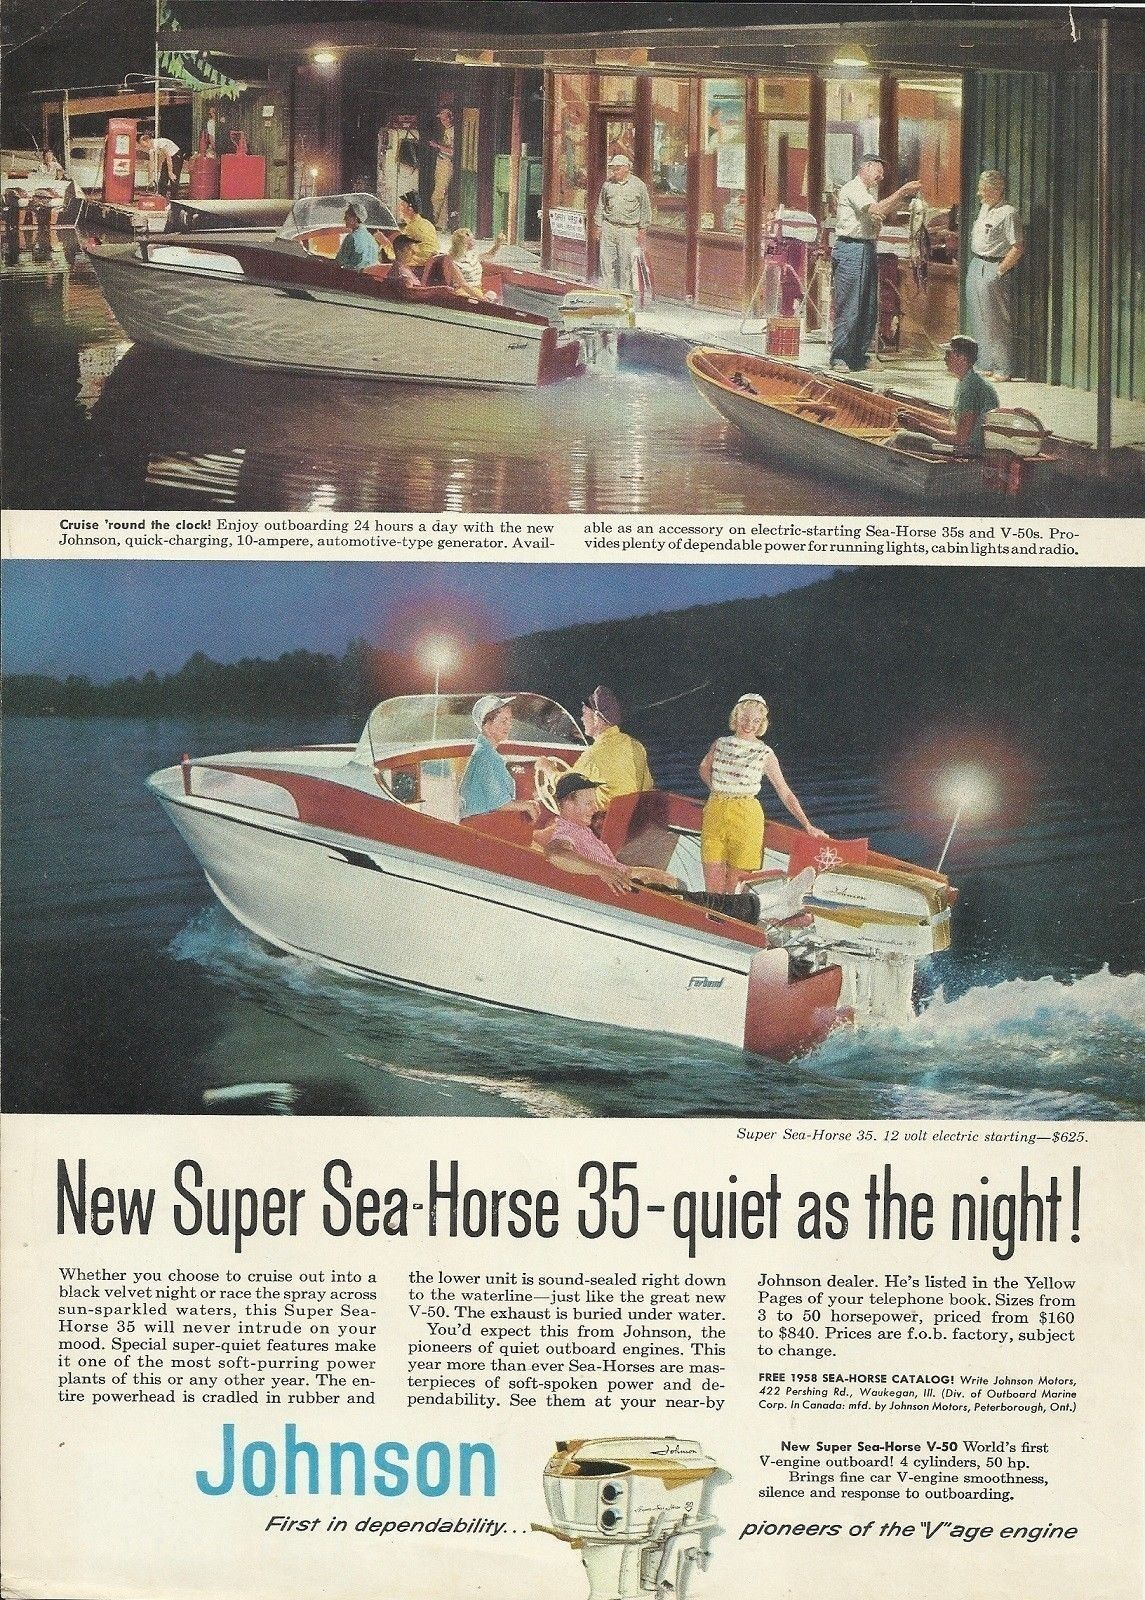 how to winterize a johnson outboard motor boating and engine 1958 Johnson Super Seahorse 35 1959 Johnson Seahorse 35 Hp Wiring Diagram 1958 johnson motors color ad the super sea horse 35 hp outboard motor